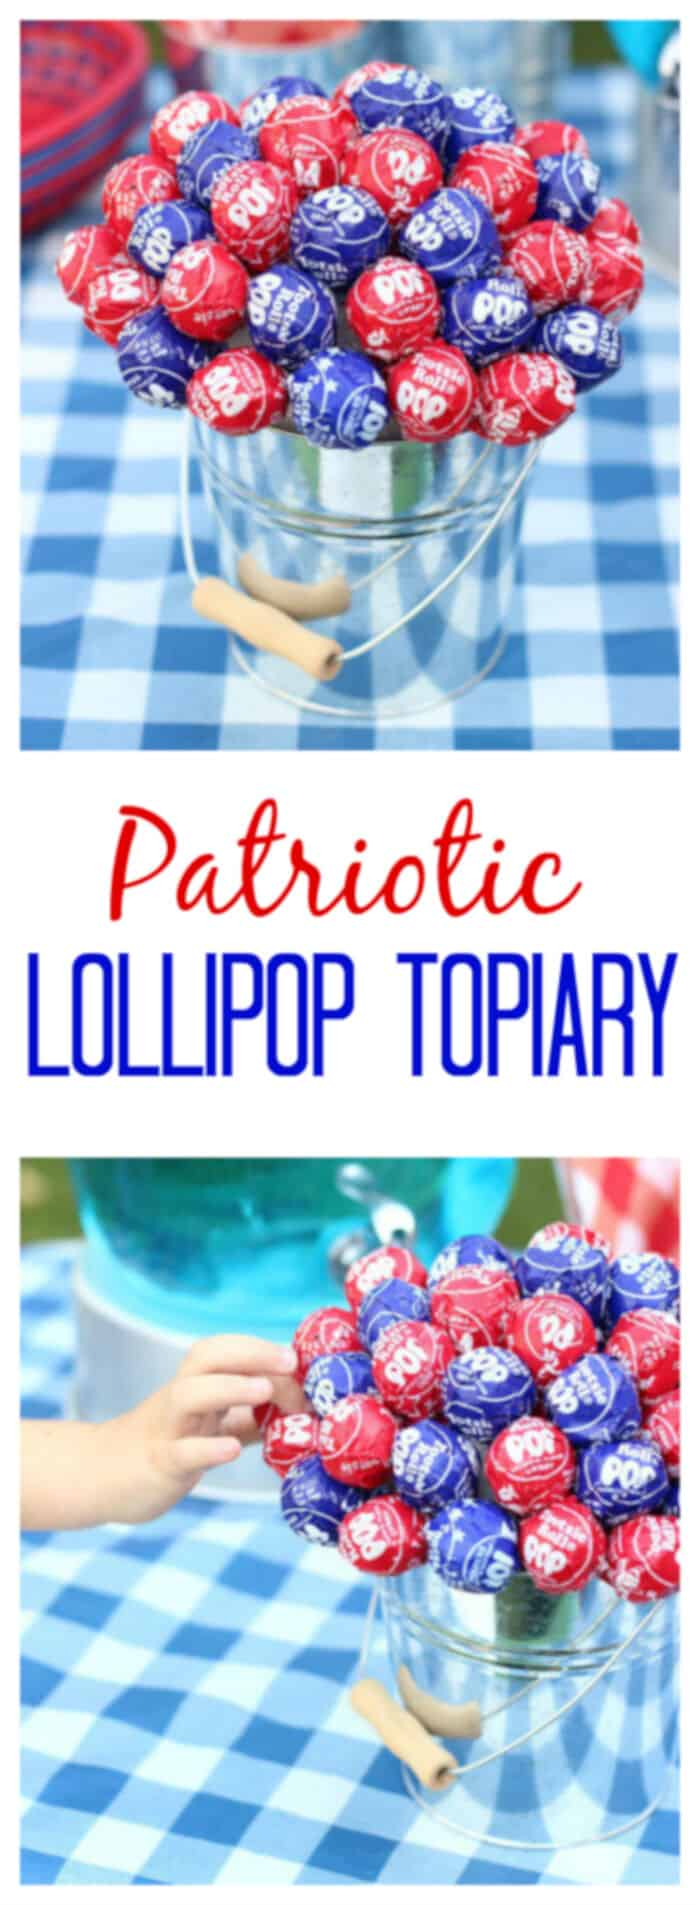 Patriotic Lollipop Topiary by Gluesticks